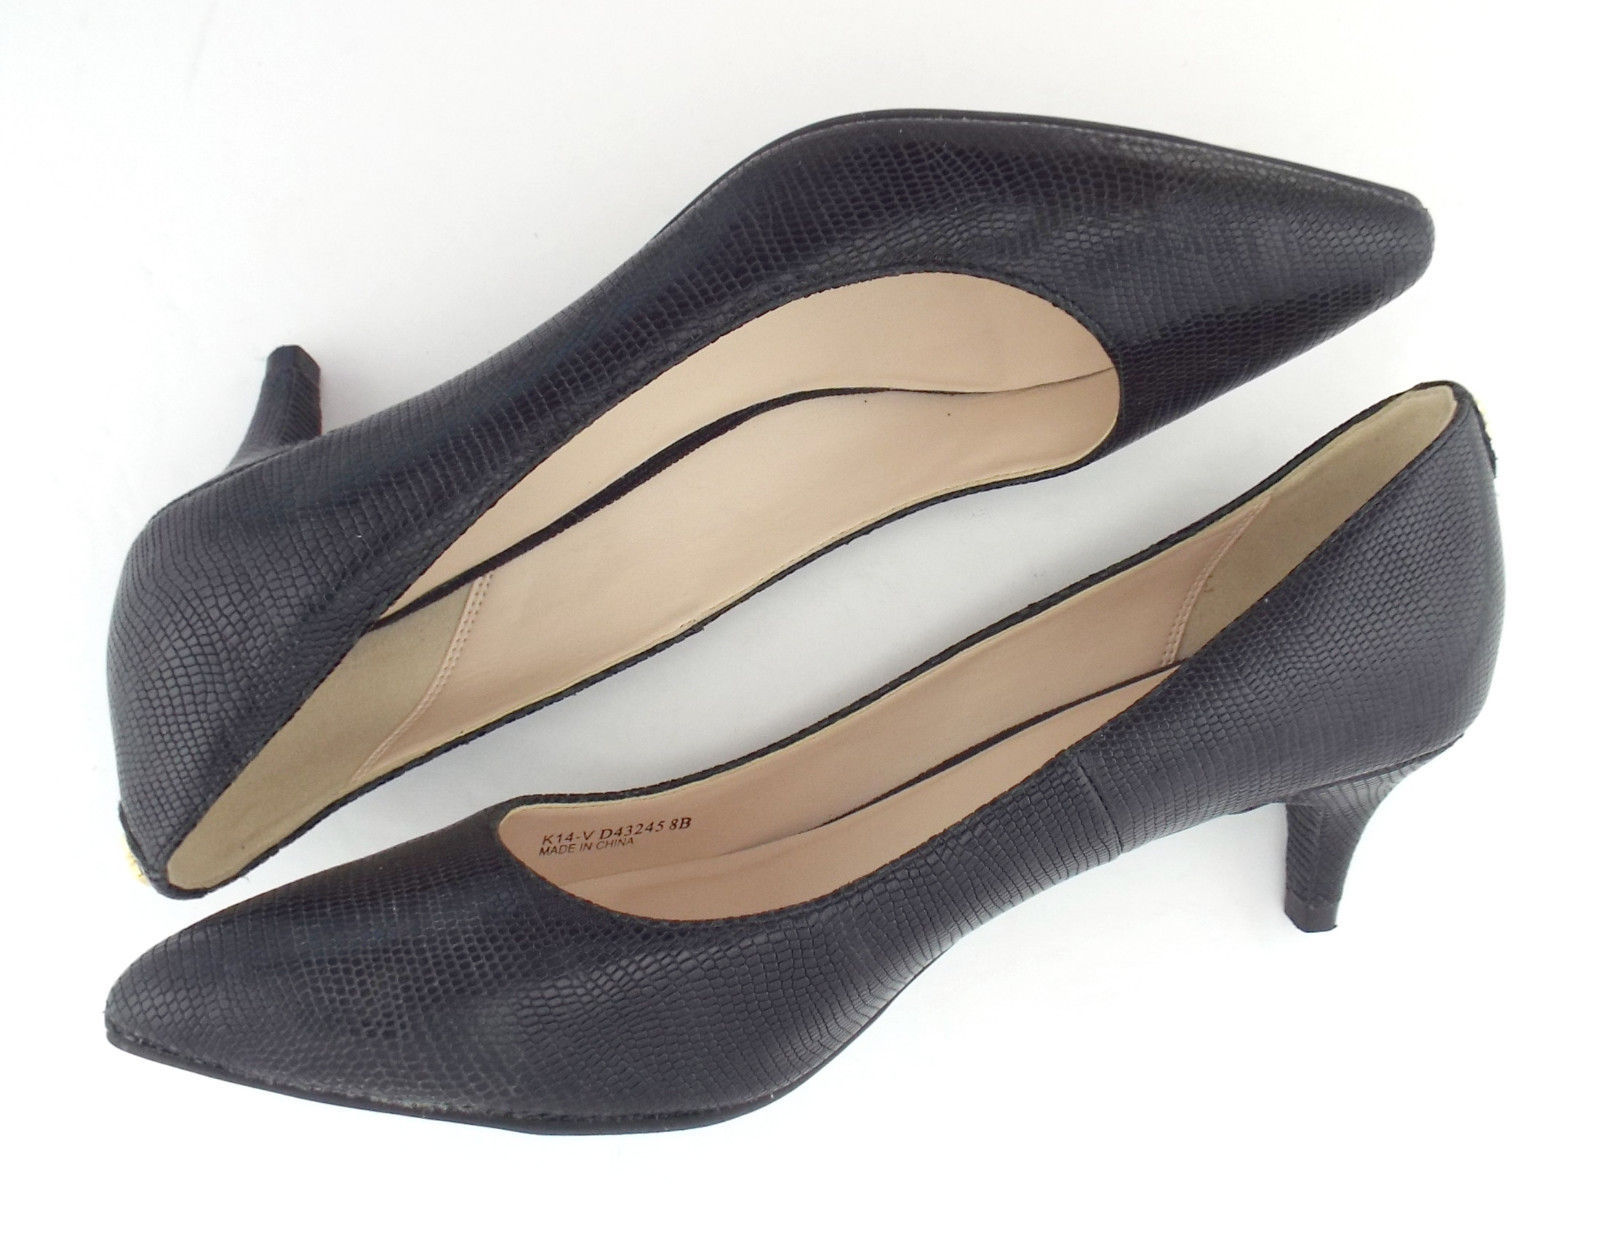 COLE HAAN Size 8 Black Textured Leather Low Heel Pumps Shoes